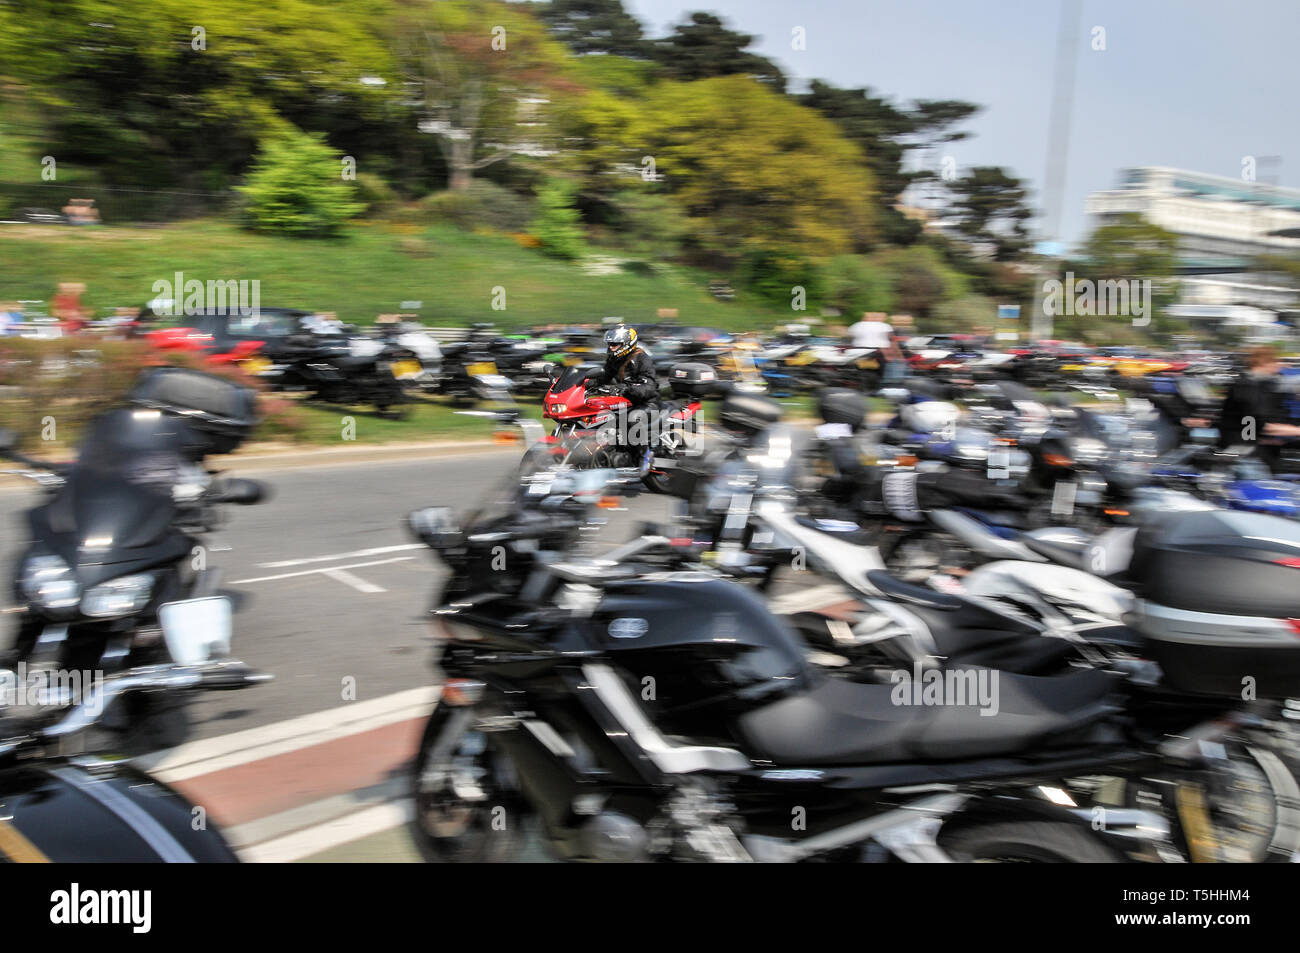 yamaha-fazer-riding-at-speed-through-rows-of-bikes-at-the-southend-shakedown-2014-motorcycle-rally-southend-on-sea-essex-uk-space-for-copy-T5HHM4.jpg